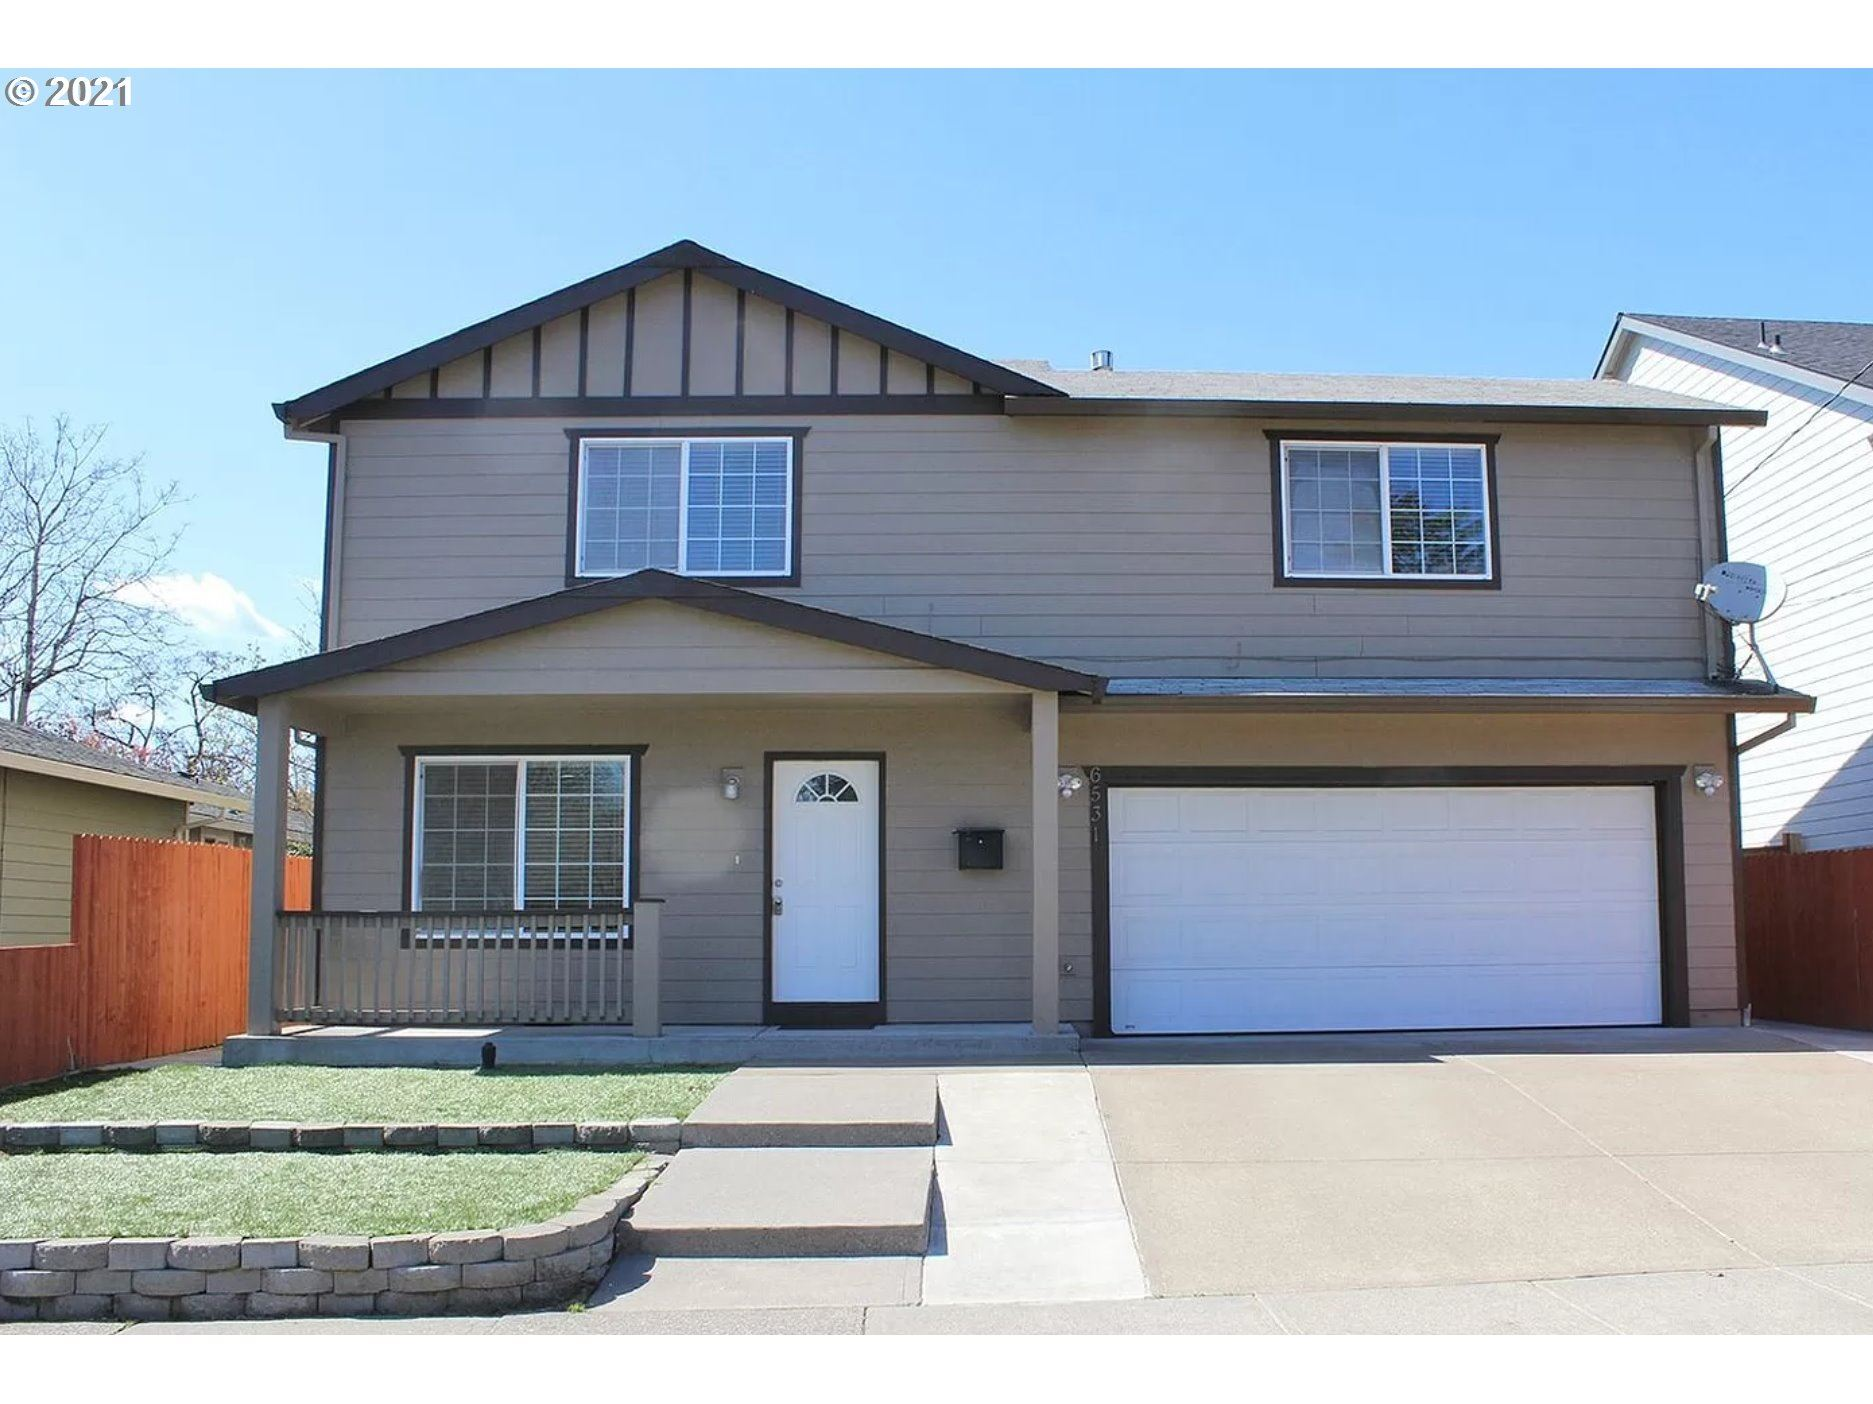 6531 SE 87TH AVE, Portland, OR 97266 - MLS#: 21519661